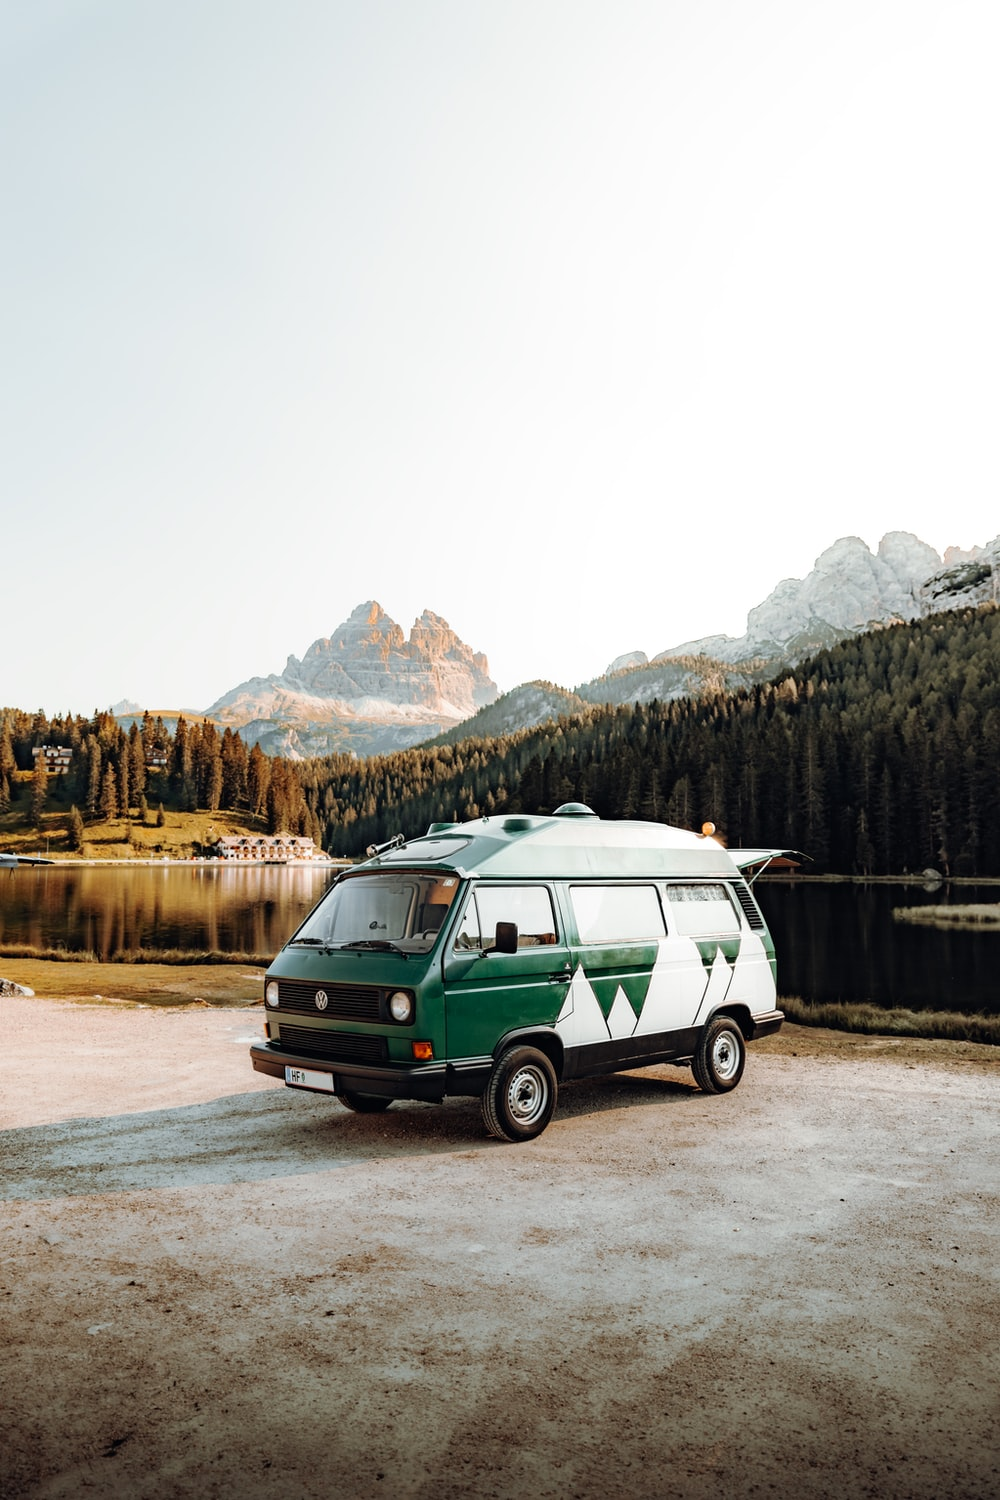 green and white van on road near mountain during daytime